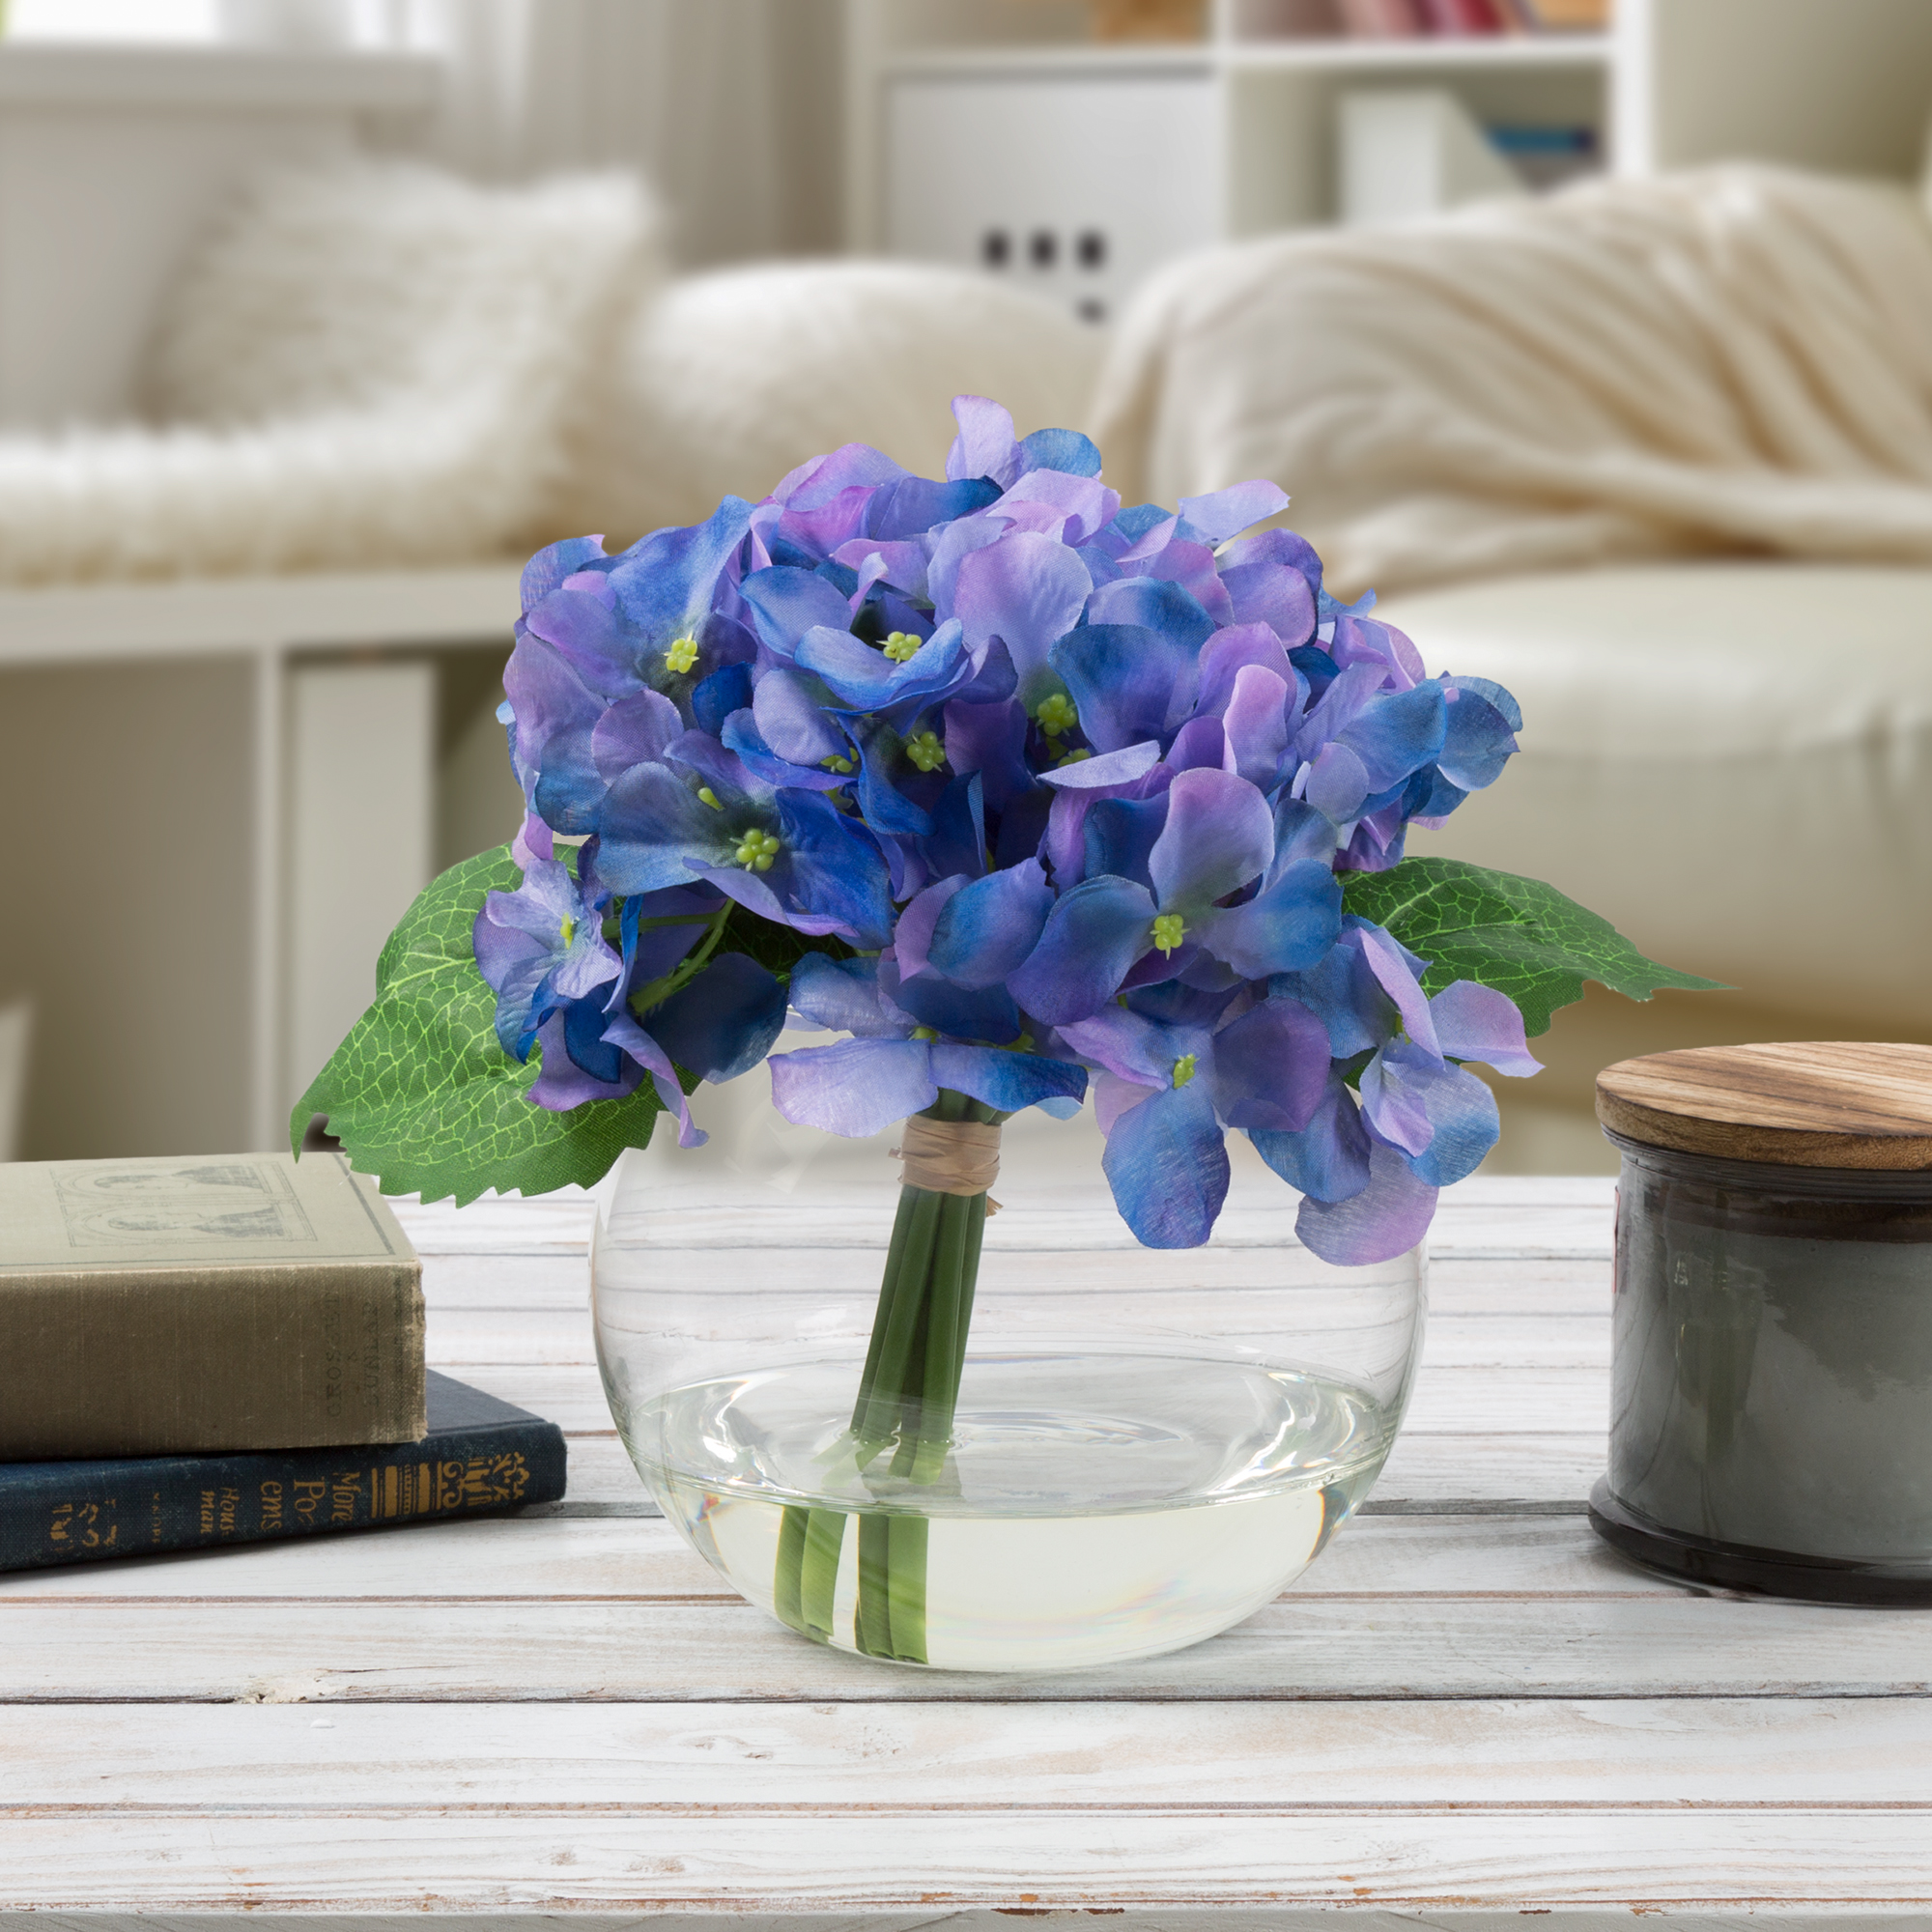 Hydrangea Artificial Floral Arrangement With Vase And Faux Water